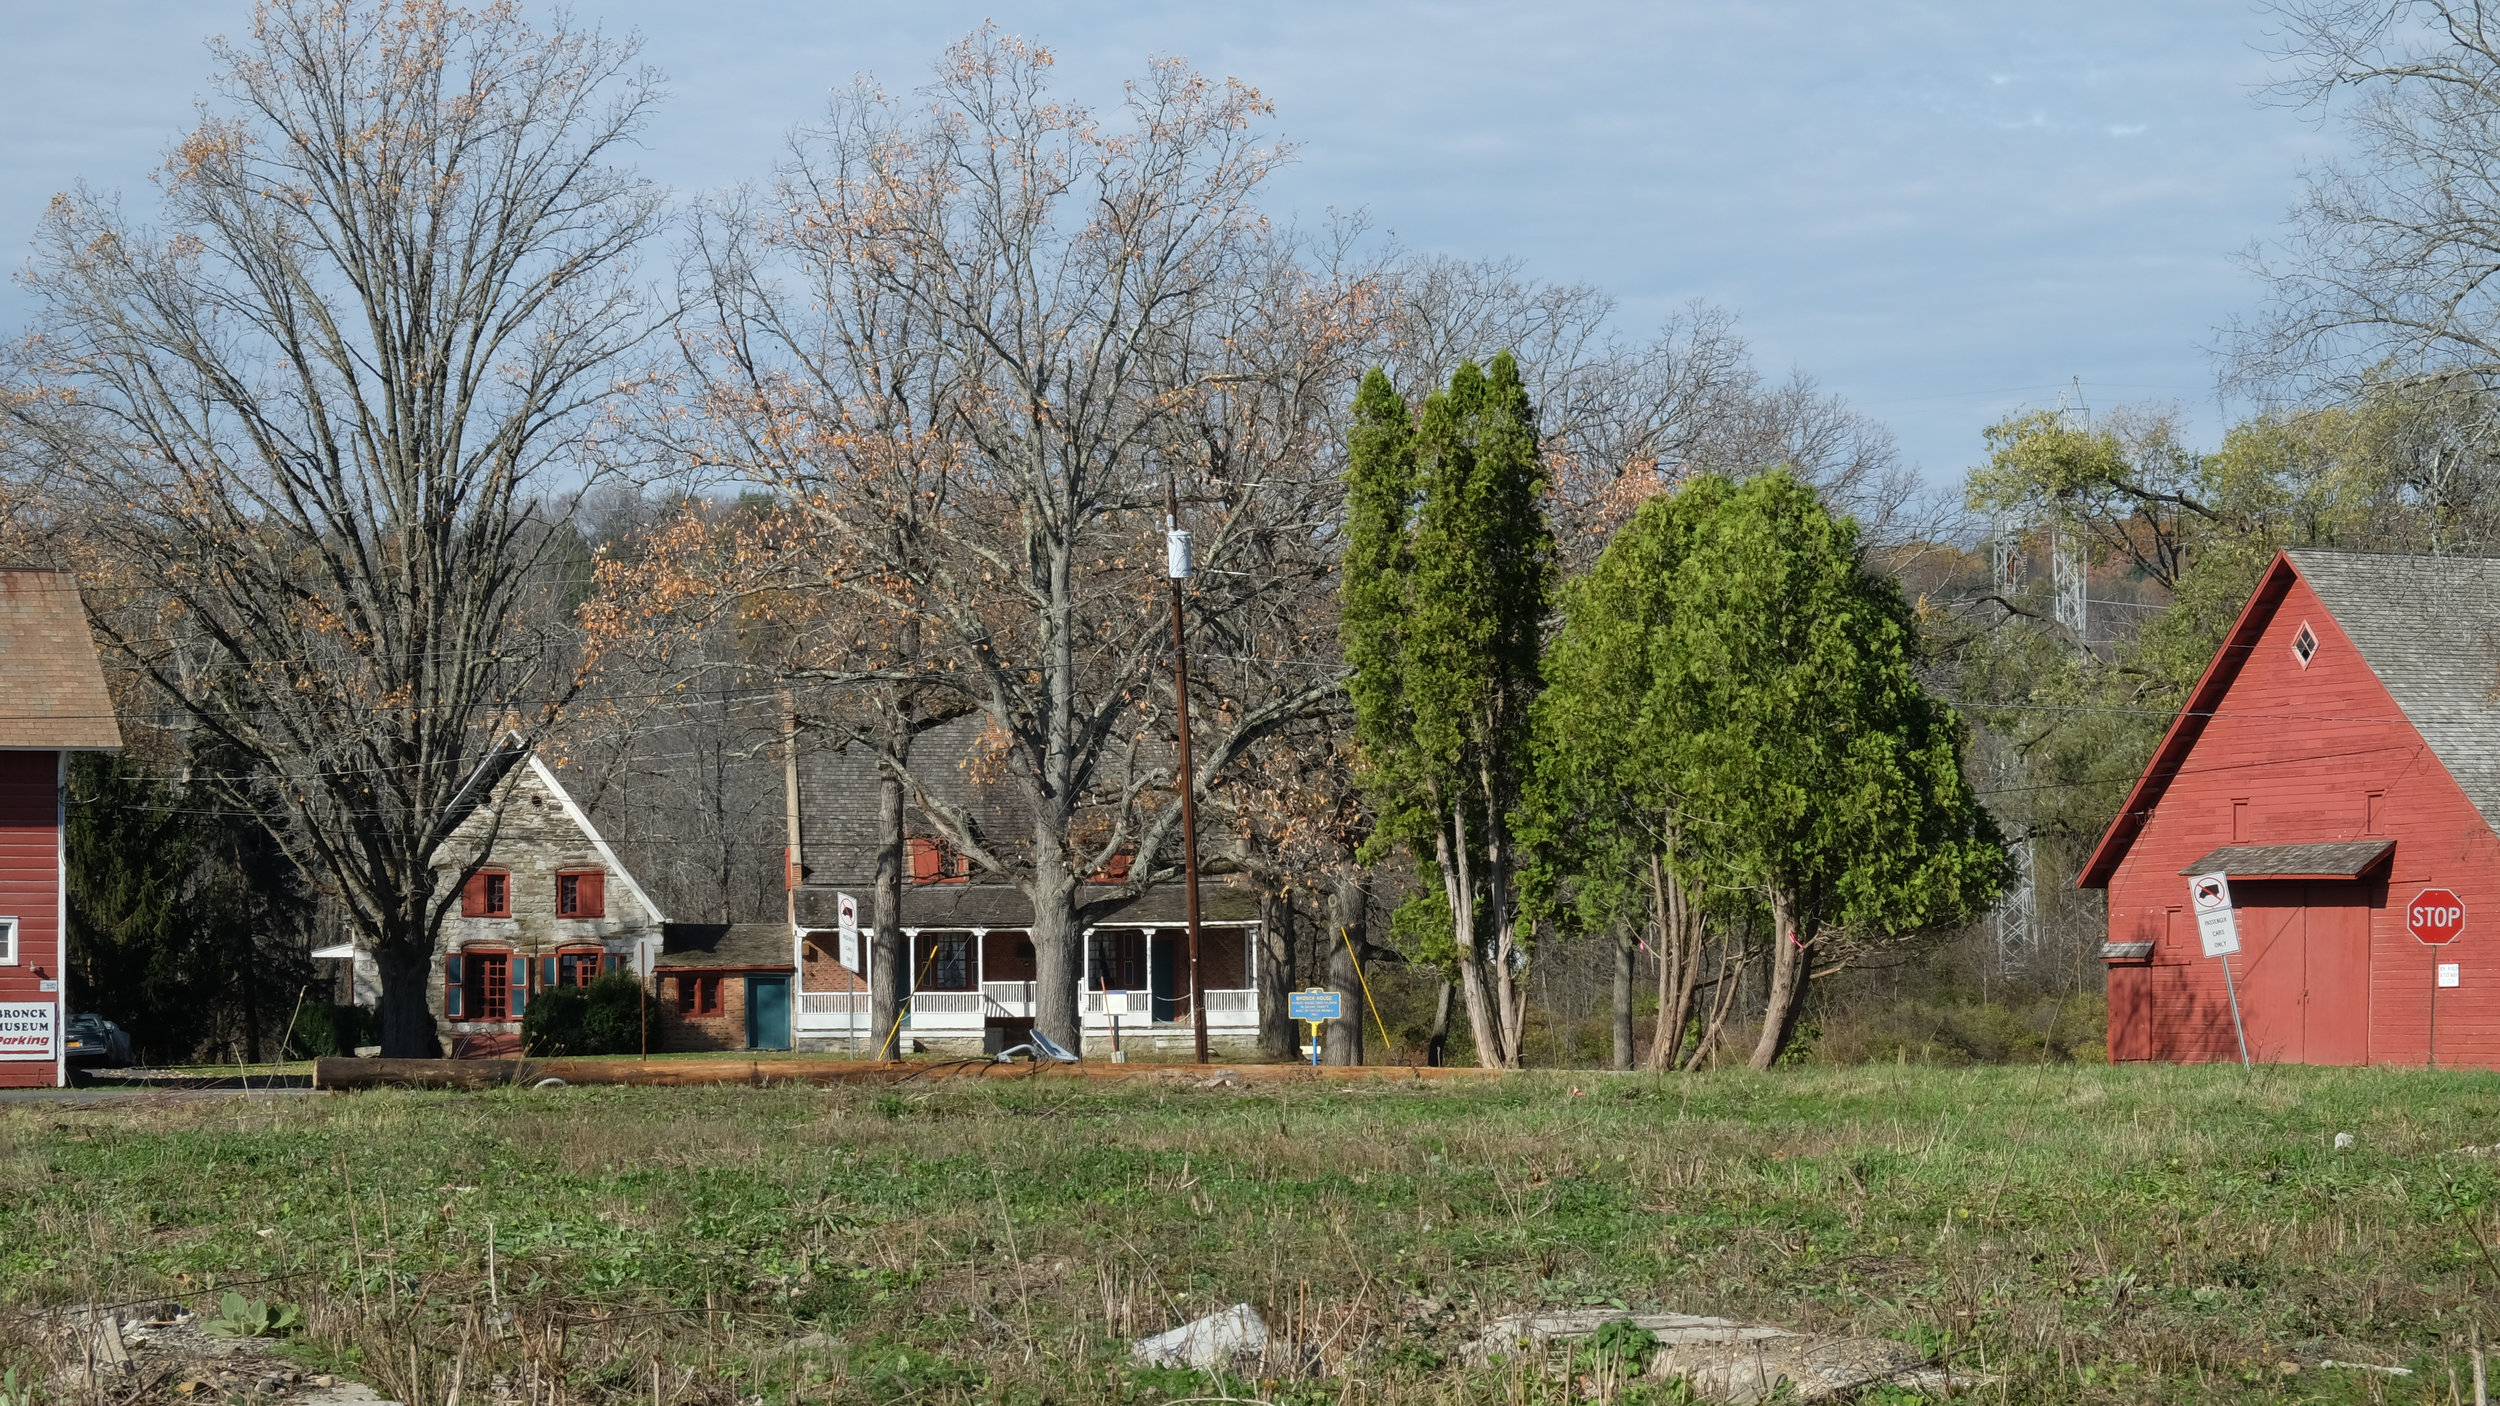 Once moved, the barn will stand in virtually the same location as a similar structure once owned by the Bronck Family in the 19th Century.